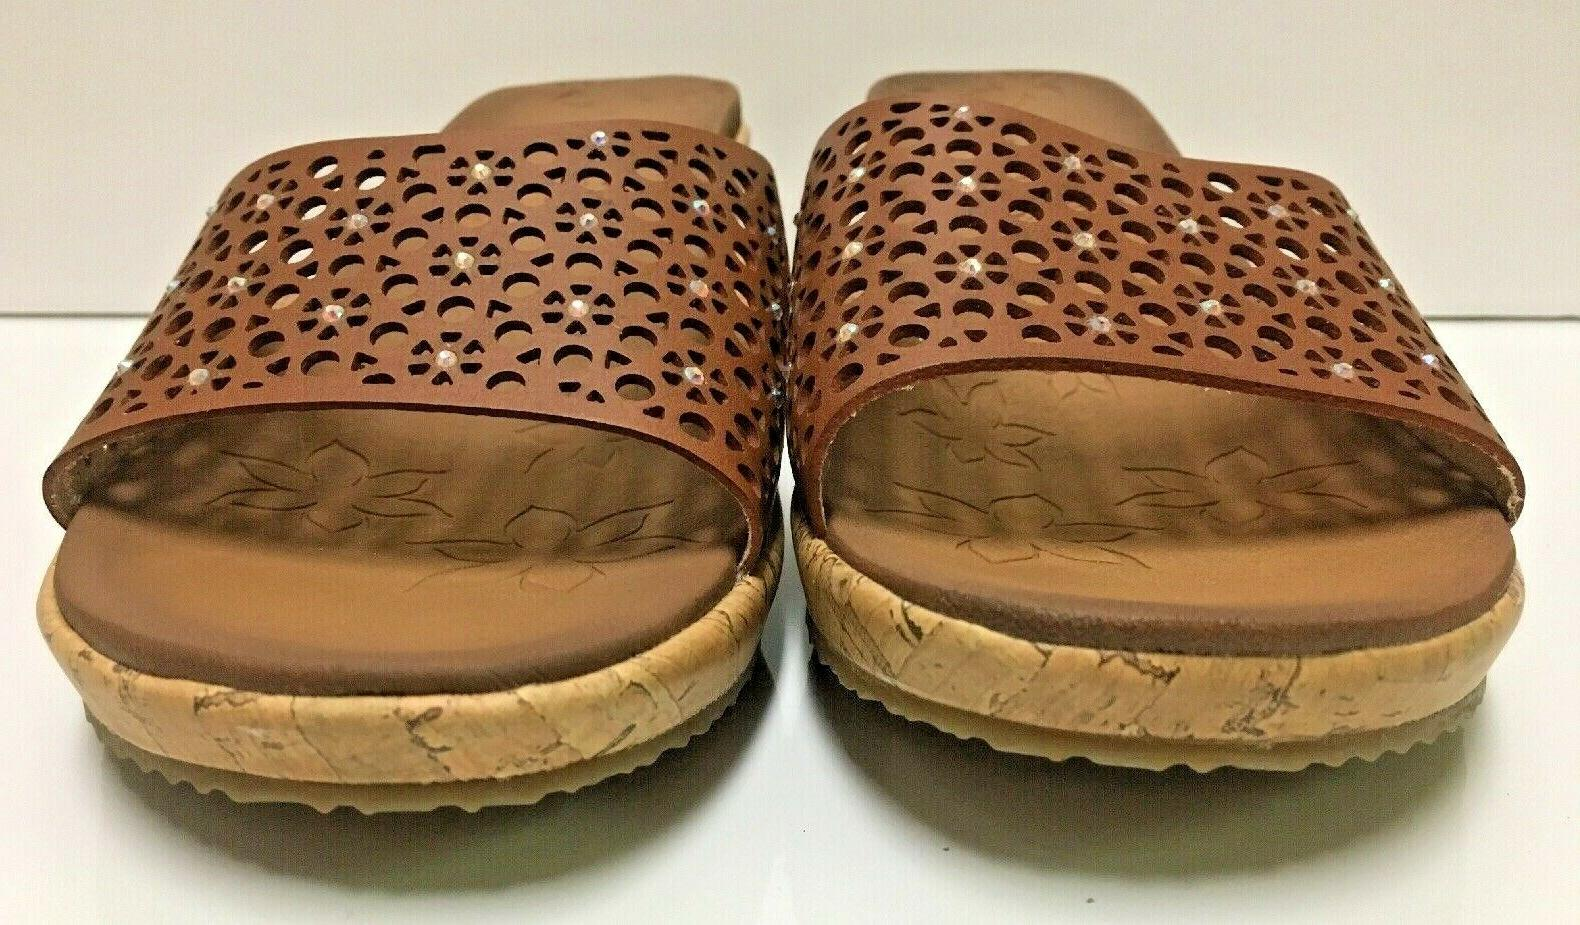 Skechers Party Hopper Lux Foam Cork Sandals Sz